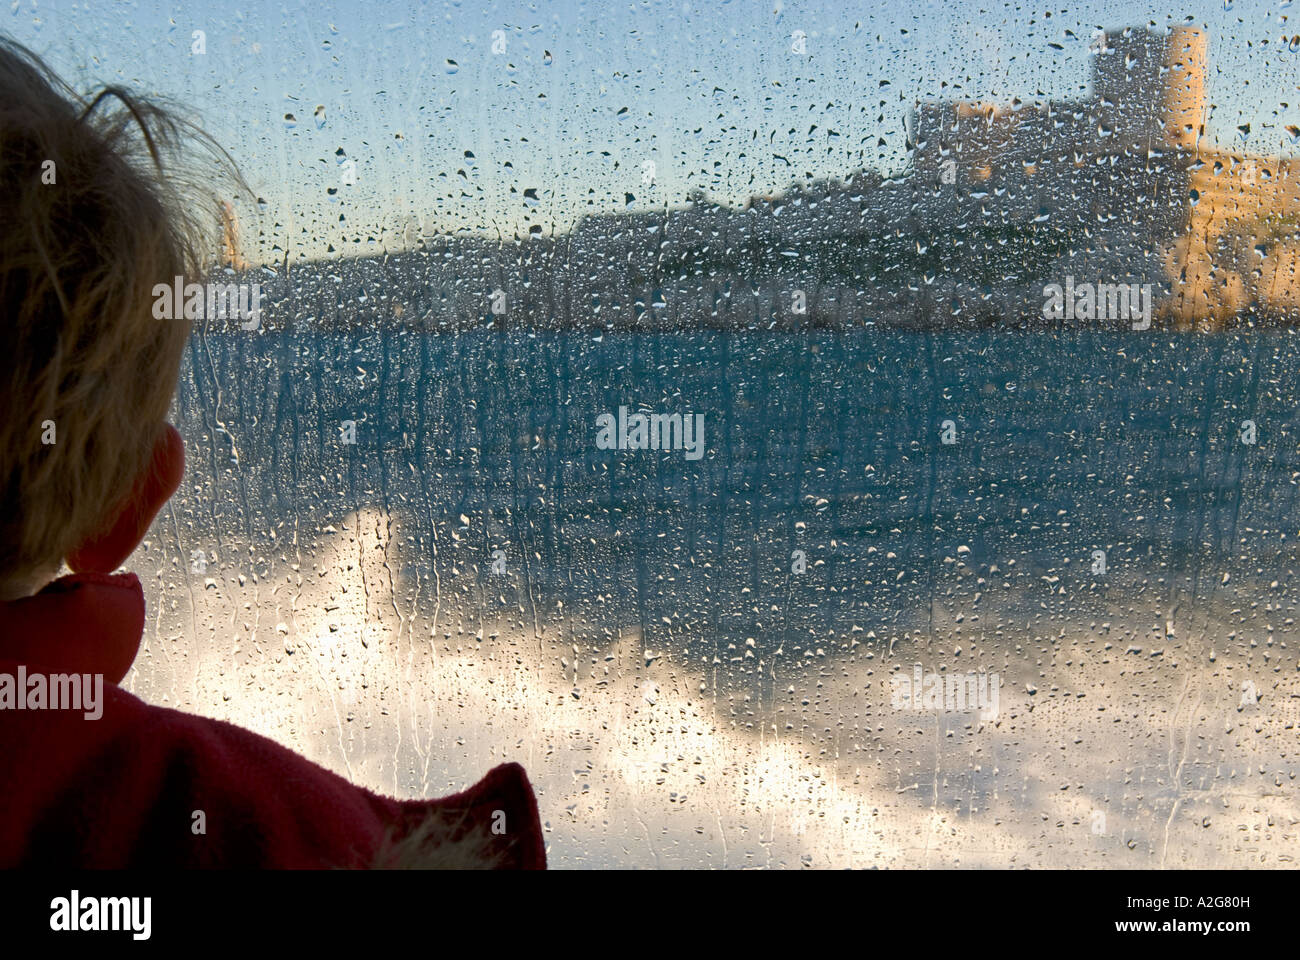 342 a cropped close up of a young boy on ferry looking through a window covered in water droplets - Stock Image